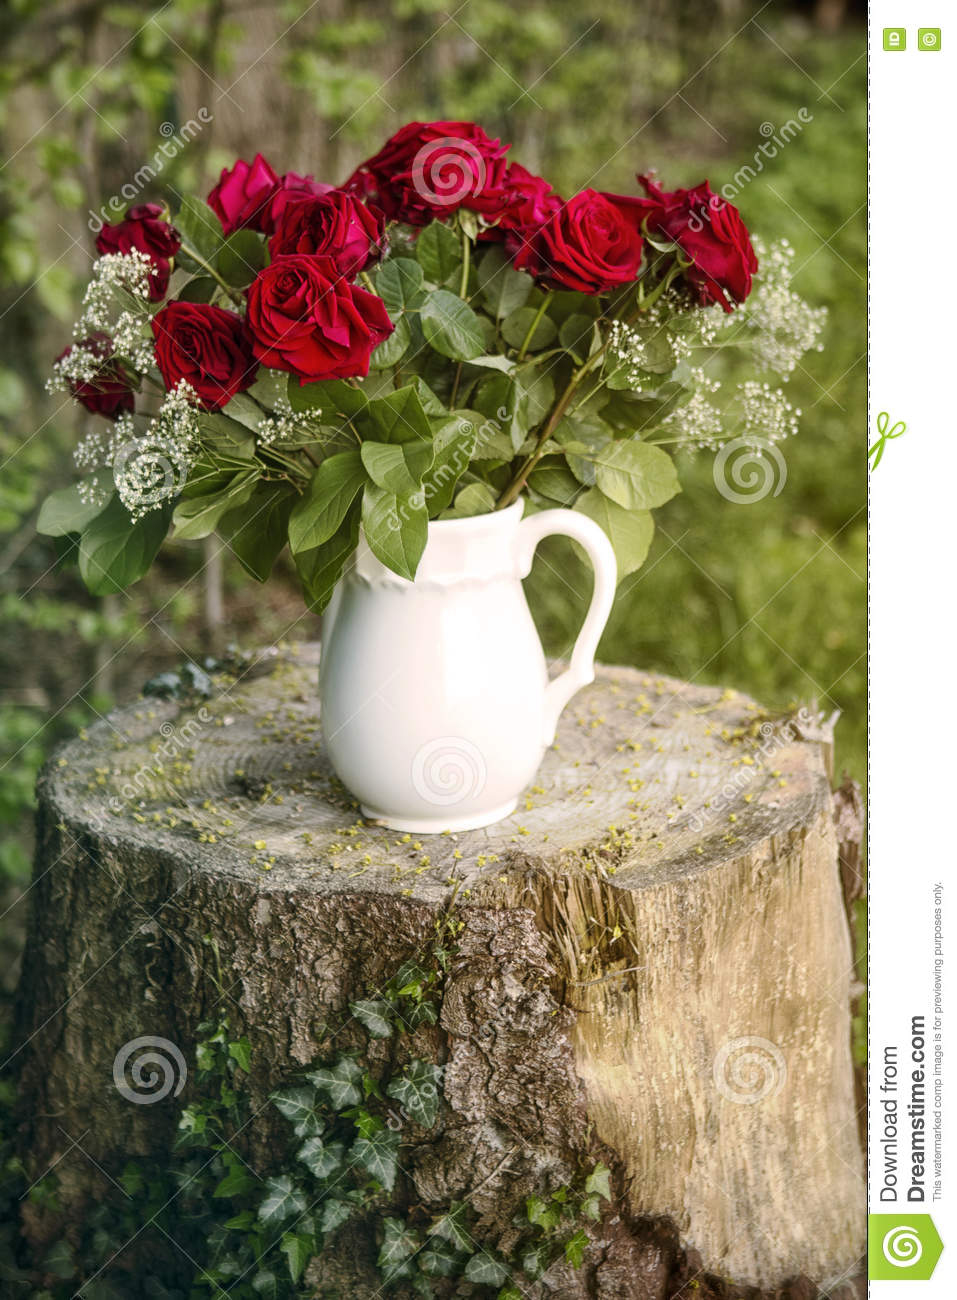 Vase with red roses on tree stump stock photo image 73808224 vase with red roses on tree stump reviewsmspy